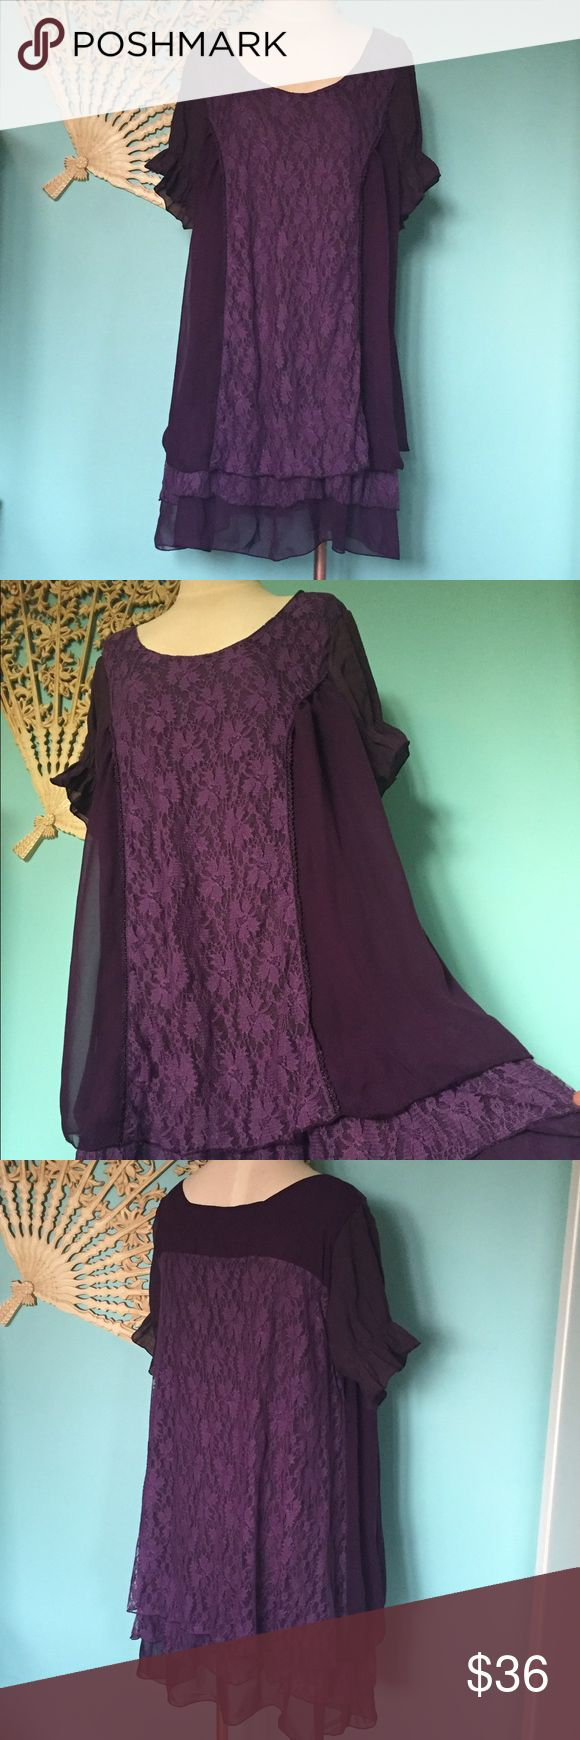 Gorgeous Purple BoHo lace free flowy slip dress This dress reminds me of a similar dress by Free People. Super luxe look!! It is so perfect for fall! Amazing deep amethyst/eggplant purple. Panels of lace and sheer material layers and lightly elastic sleeves. Really flowy and loose fitting.  Brand is Lily and is size large . Pair this dress with boots and leggings and you are ready for work or date night out!! Necklace is available in another listing. Belt not included. This color is truly…